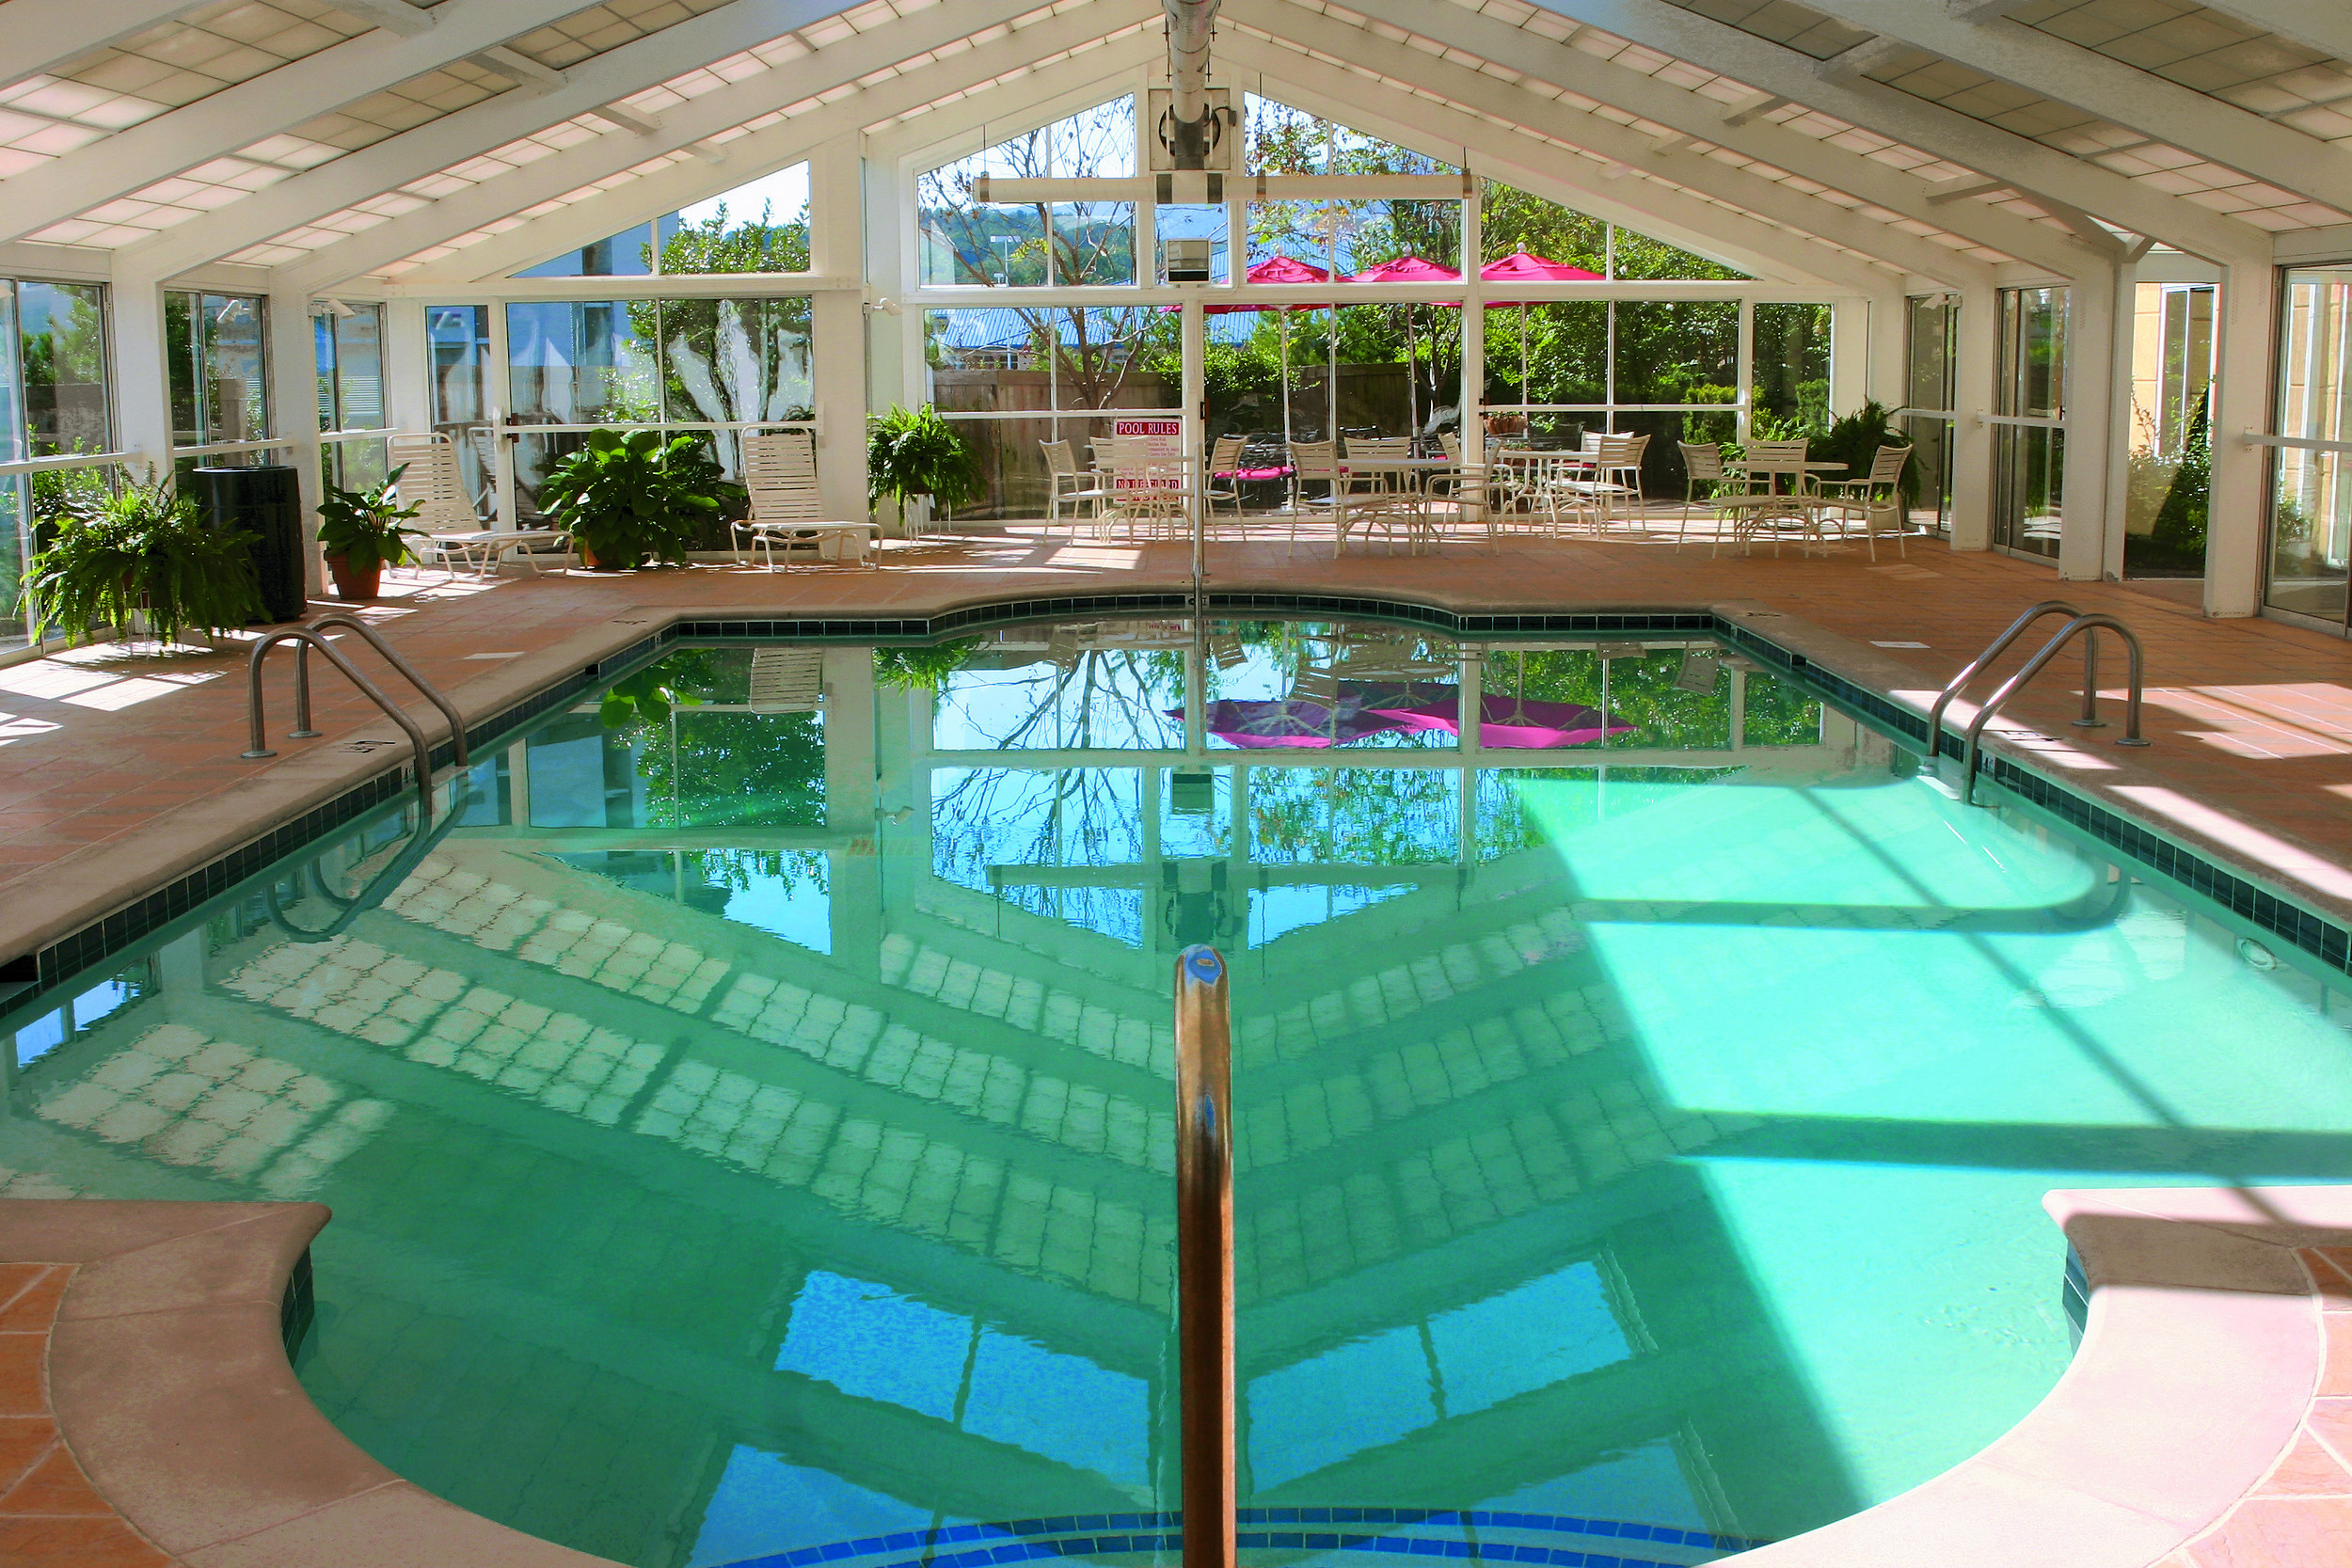 Red Roof Inn PF - Indoor Pool.jpg